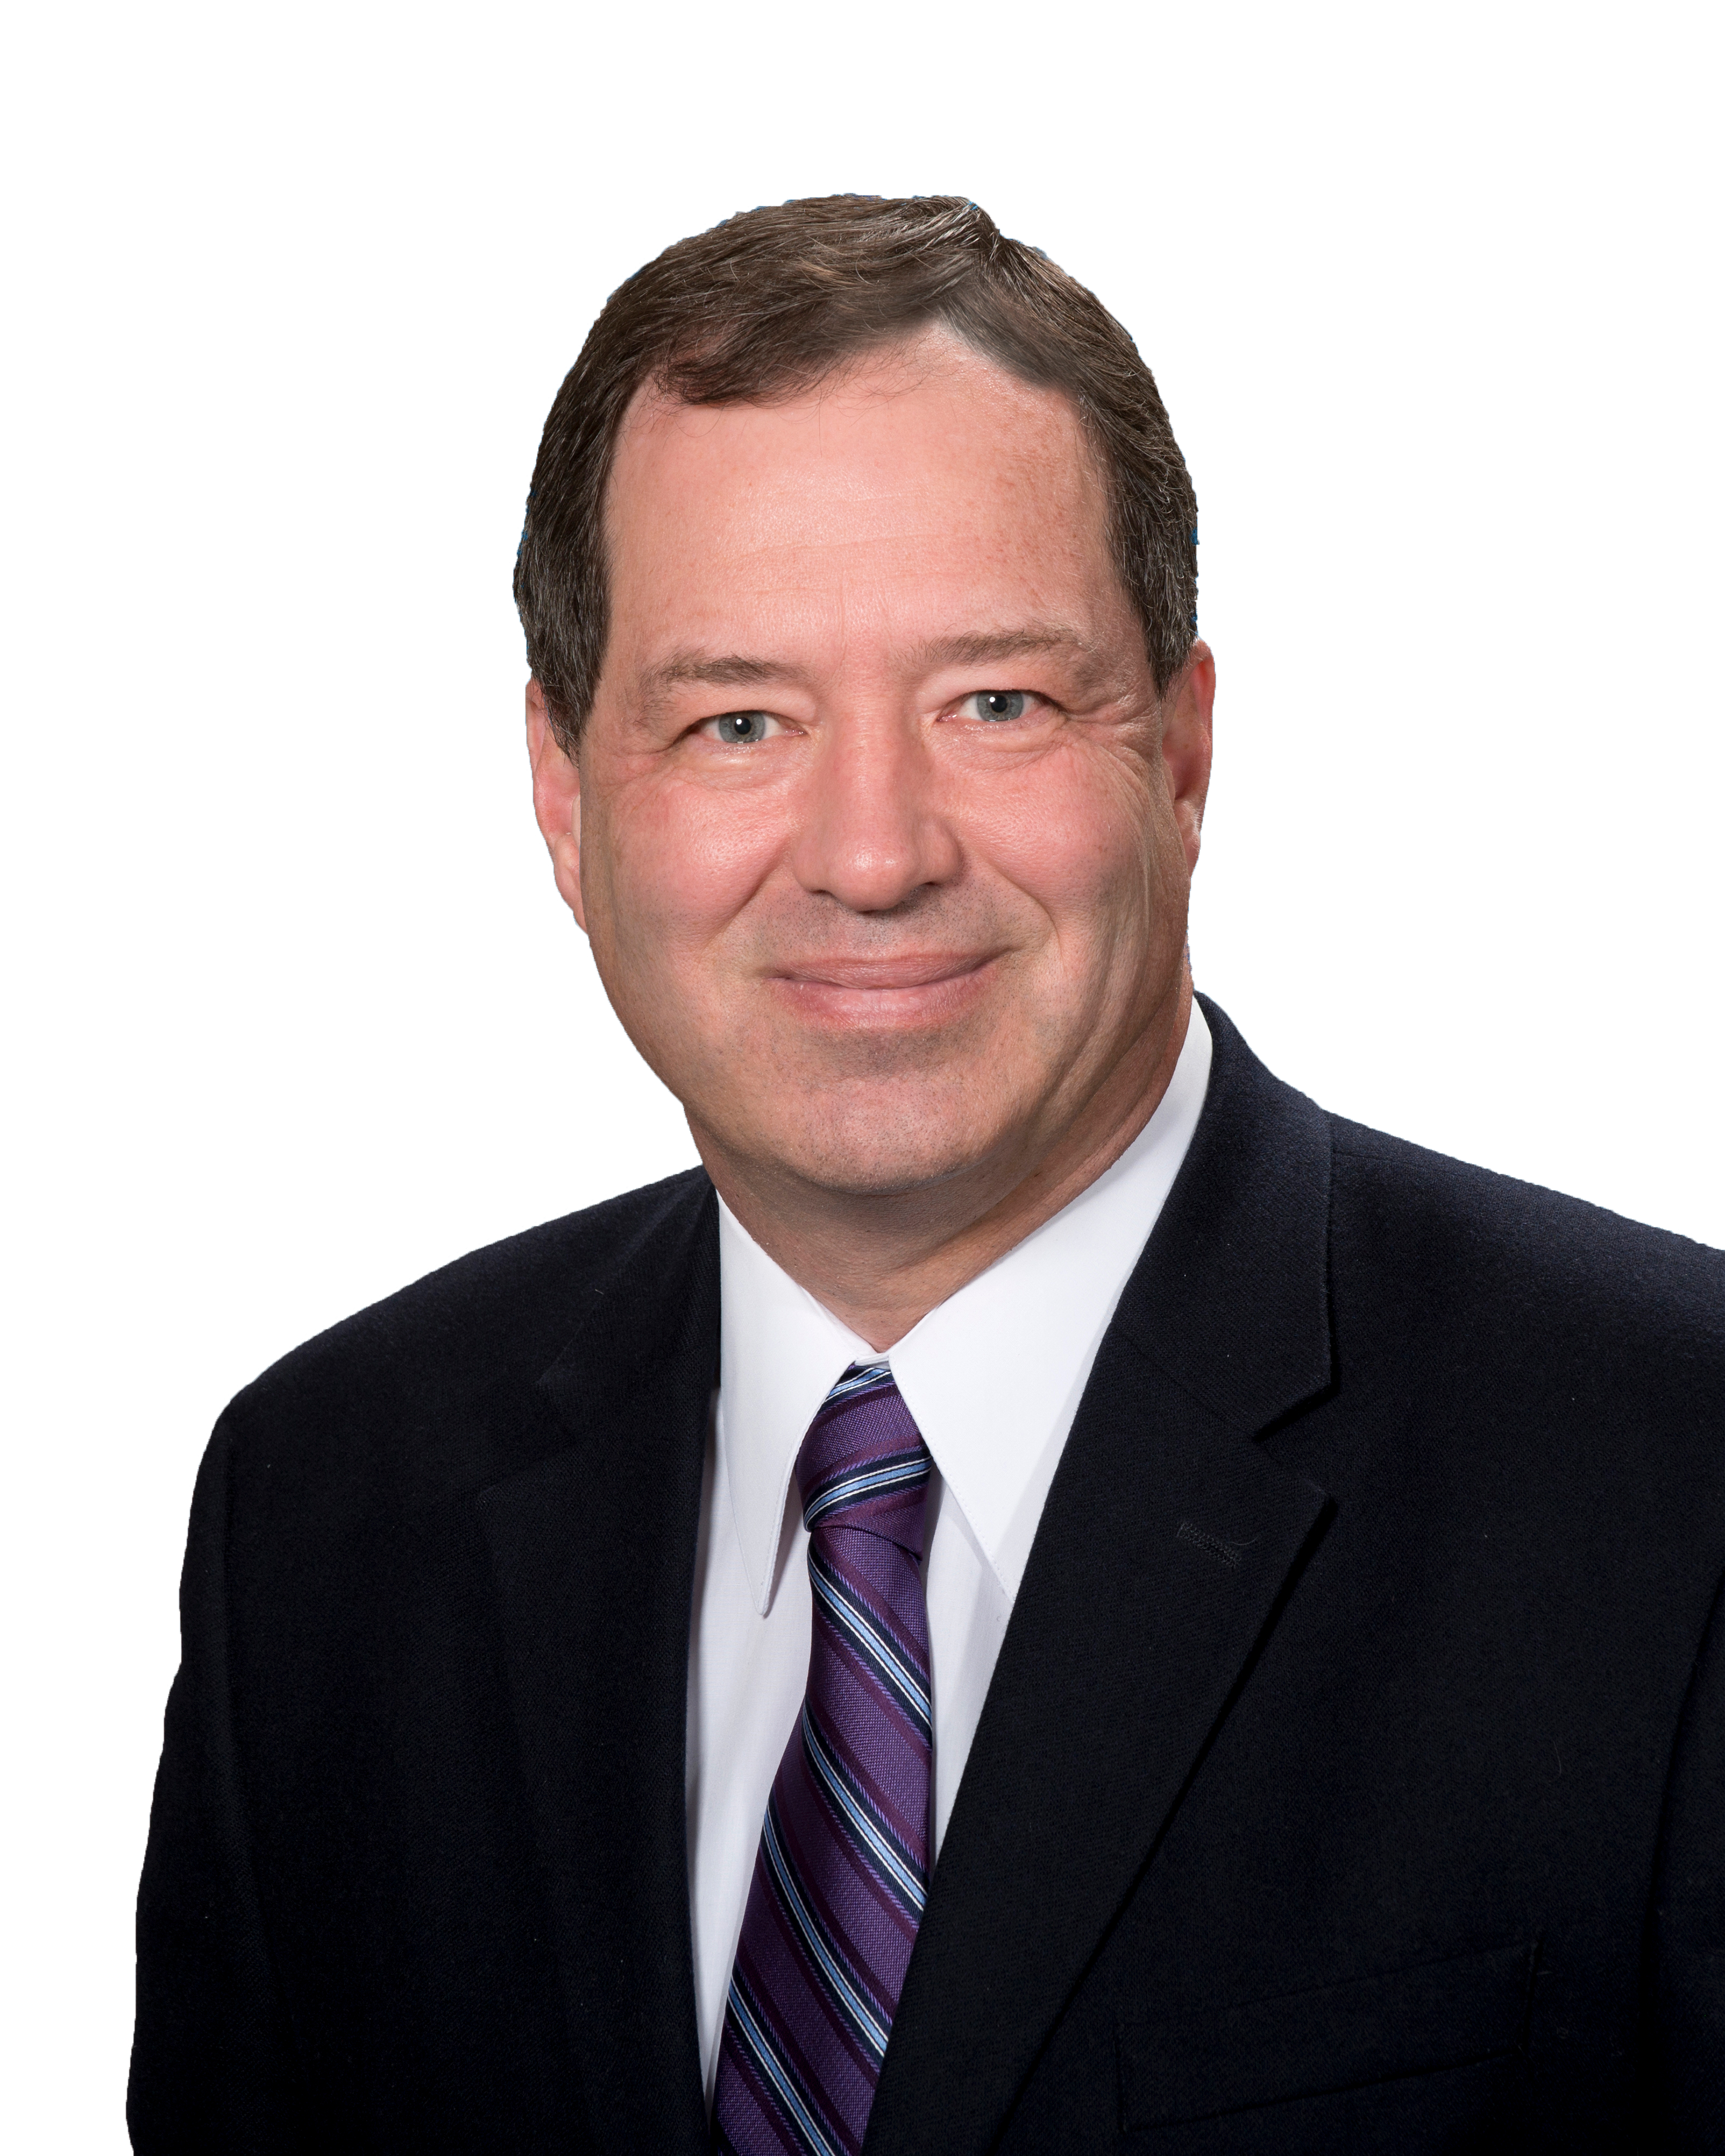 Perry Kramer, Vice President and Practice Lead, BRP